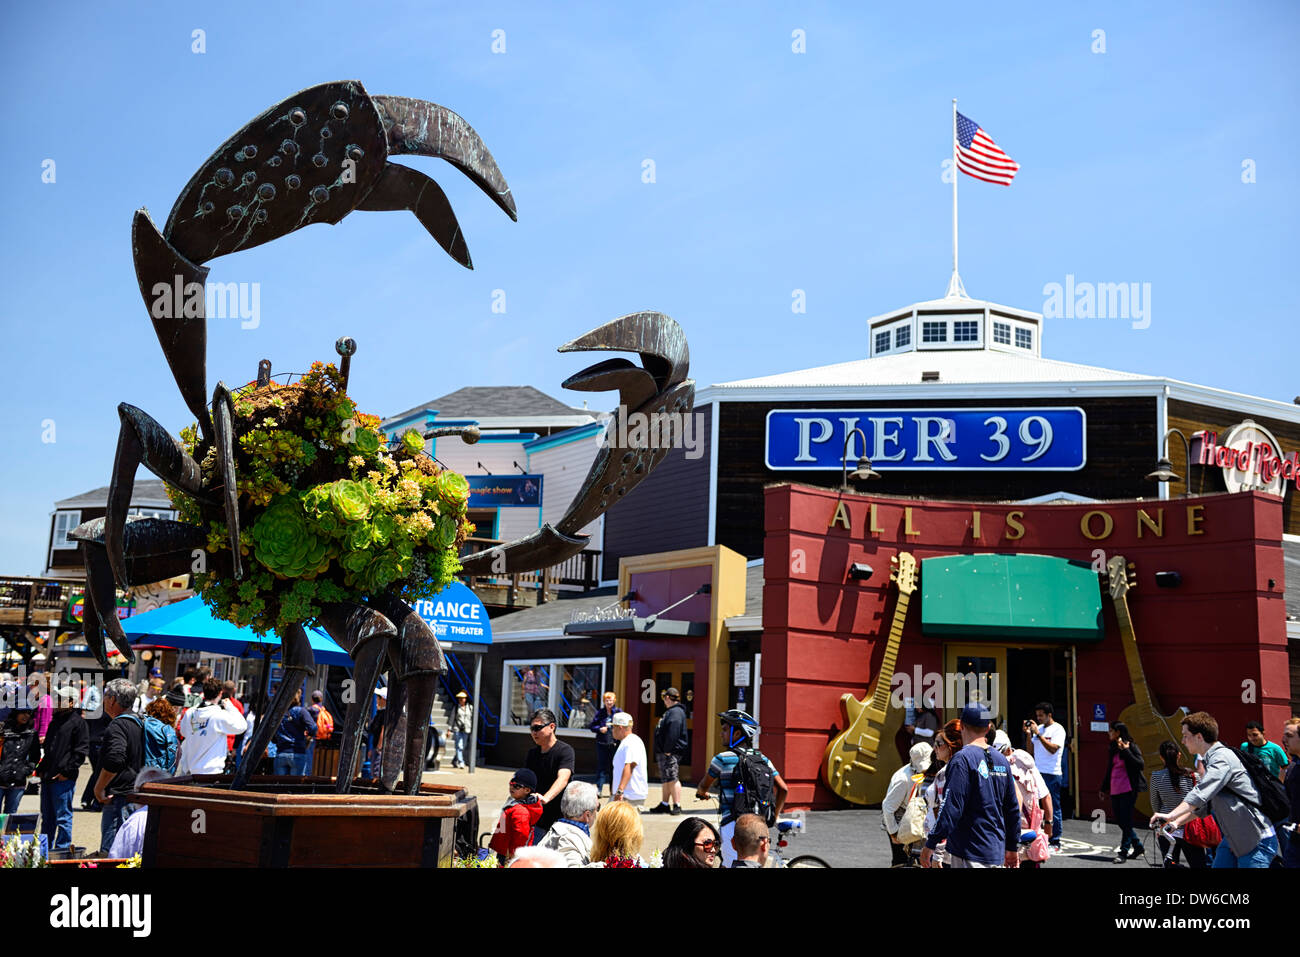 San Francisco Fisherman's Wharf - 4th of July Events